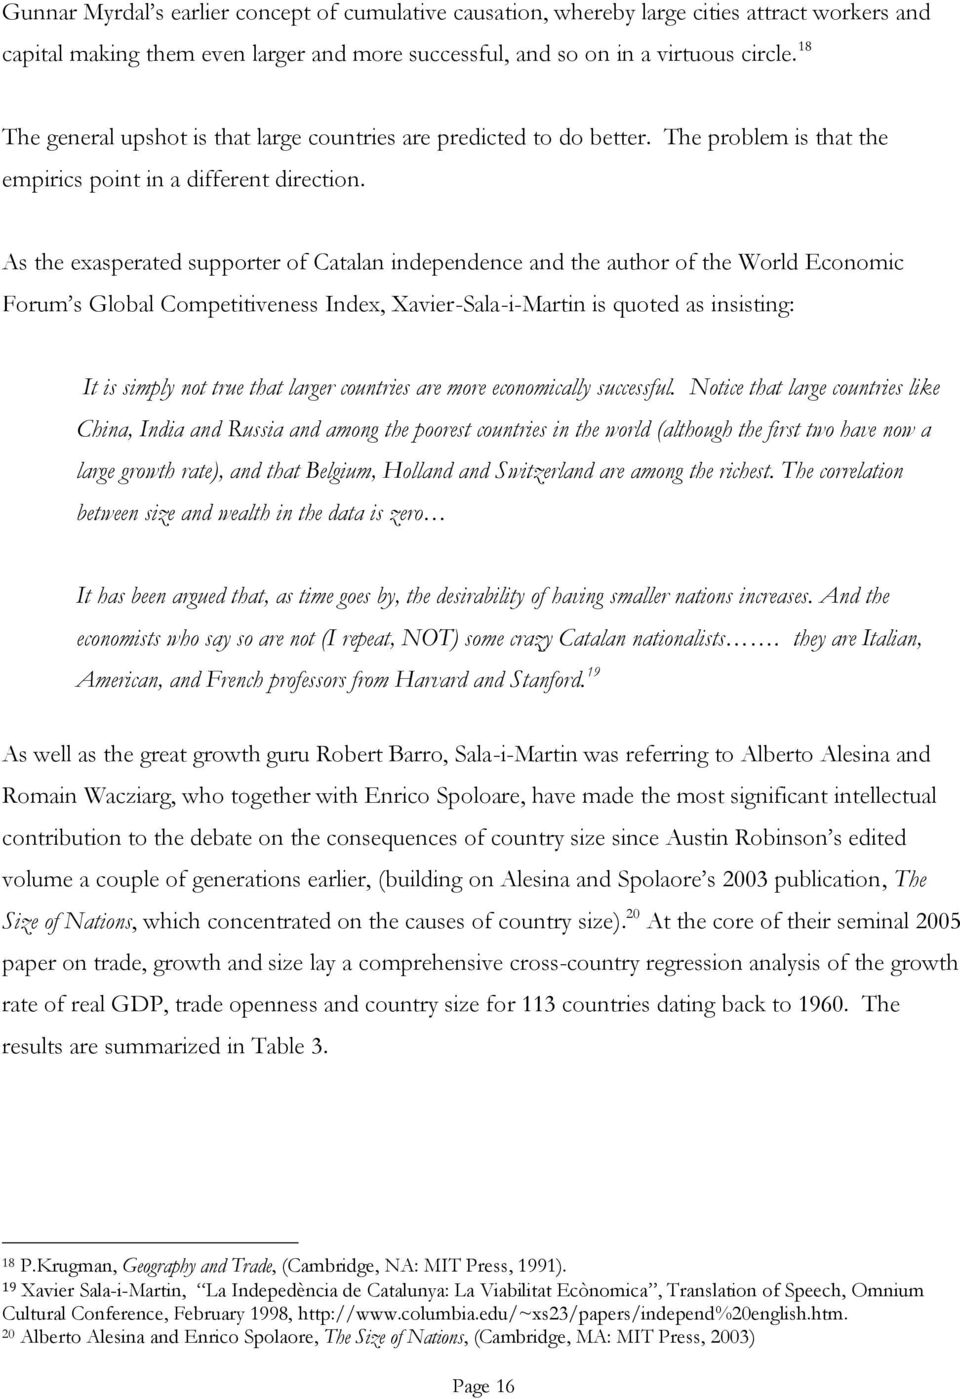 As the exasperated supporter of Catalan independence and the author of the World Economic Forum s Global Competitiveness Index, Xavier-Sala-i-Martin is quoted as insisting: It is simply not true that